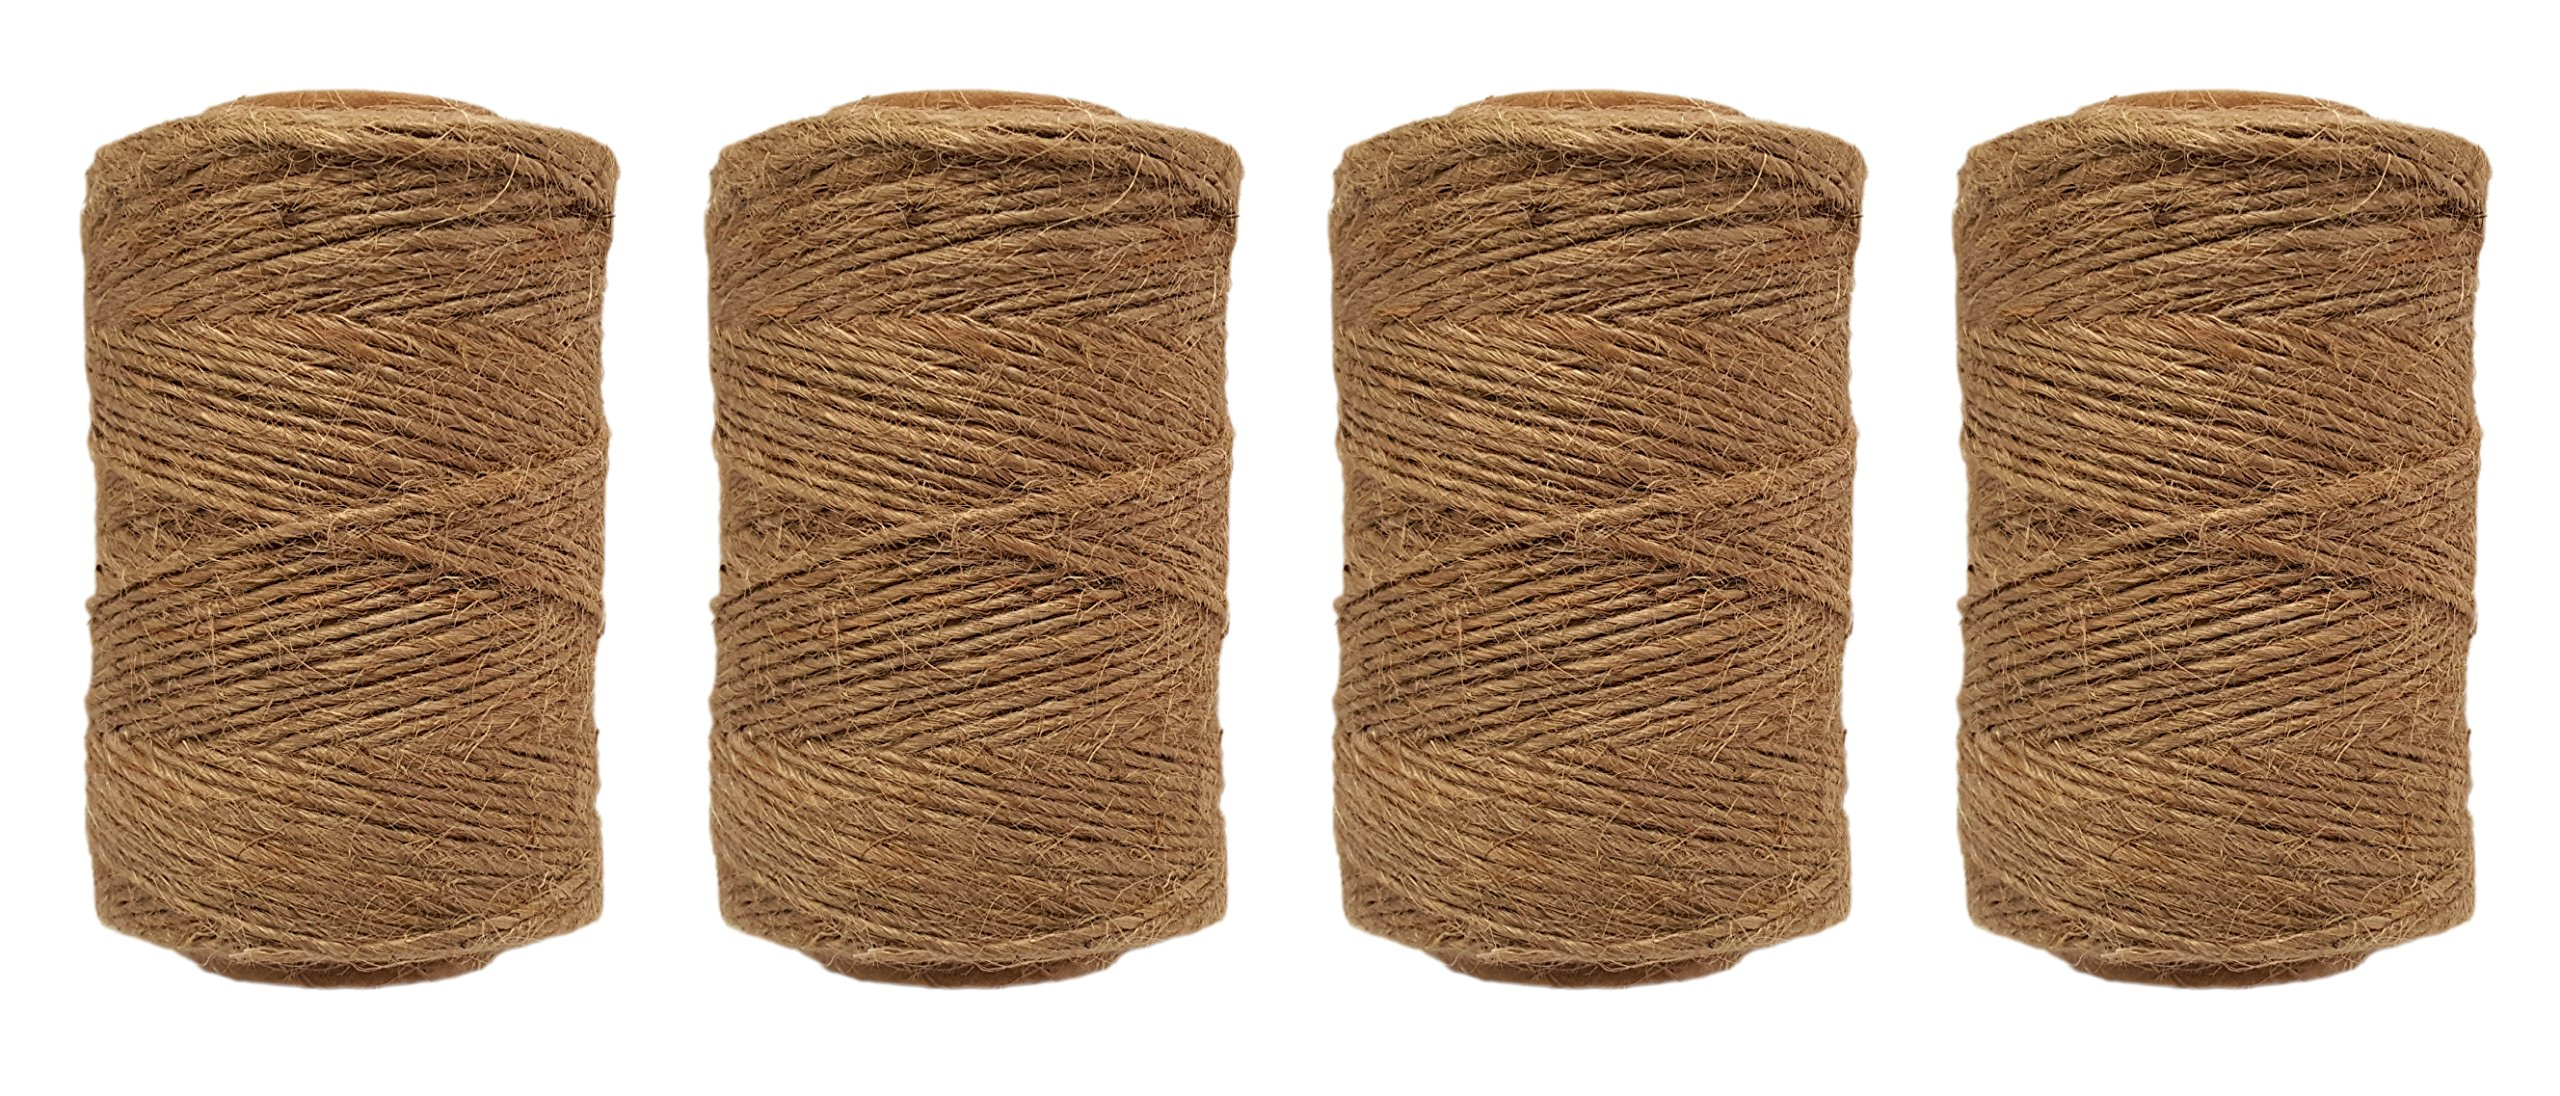 Black Duck Brand Set of 4 Spools of 100% Jute Garden All Purpose Twine! 300 feet per Spool! (4) by Black Duck Brand (Image #1)